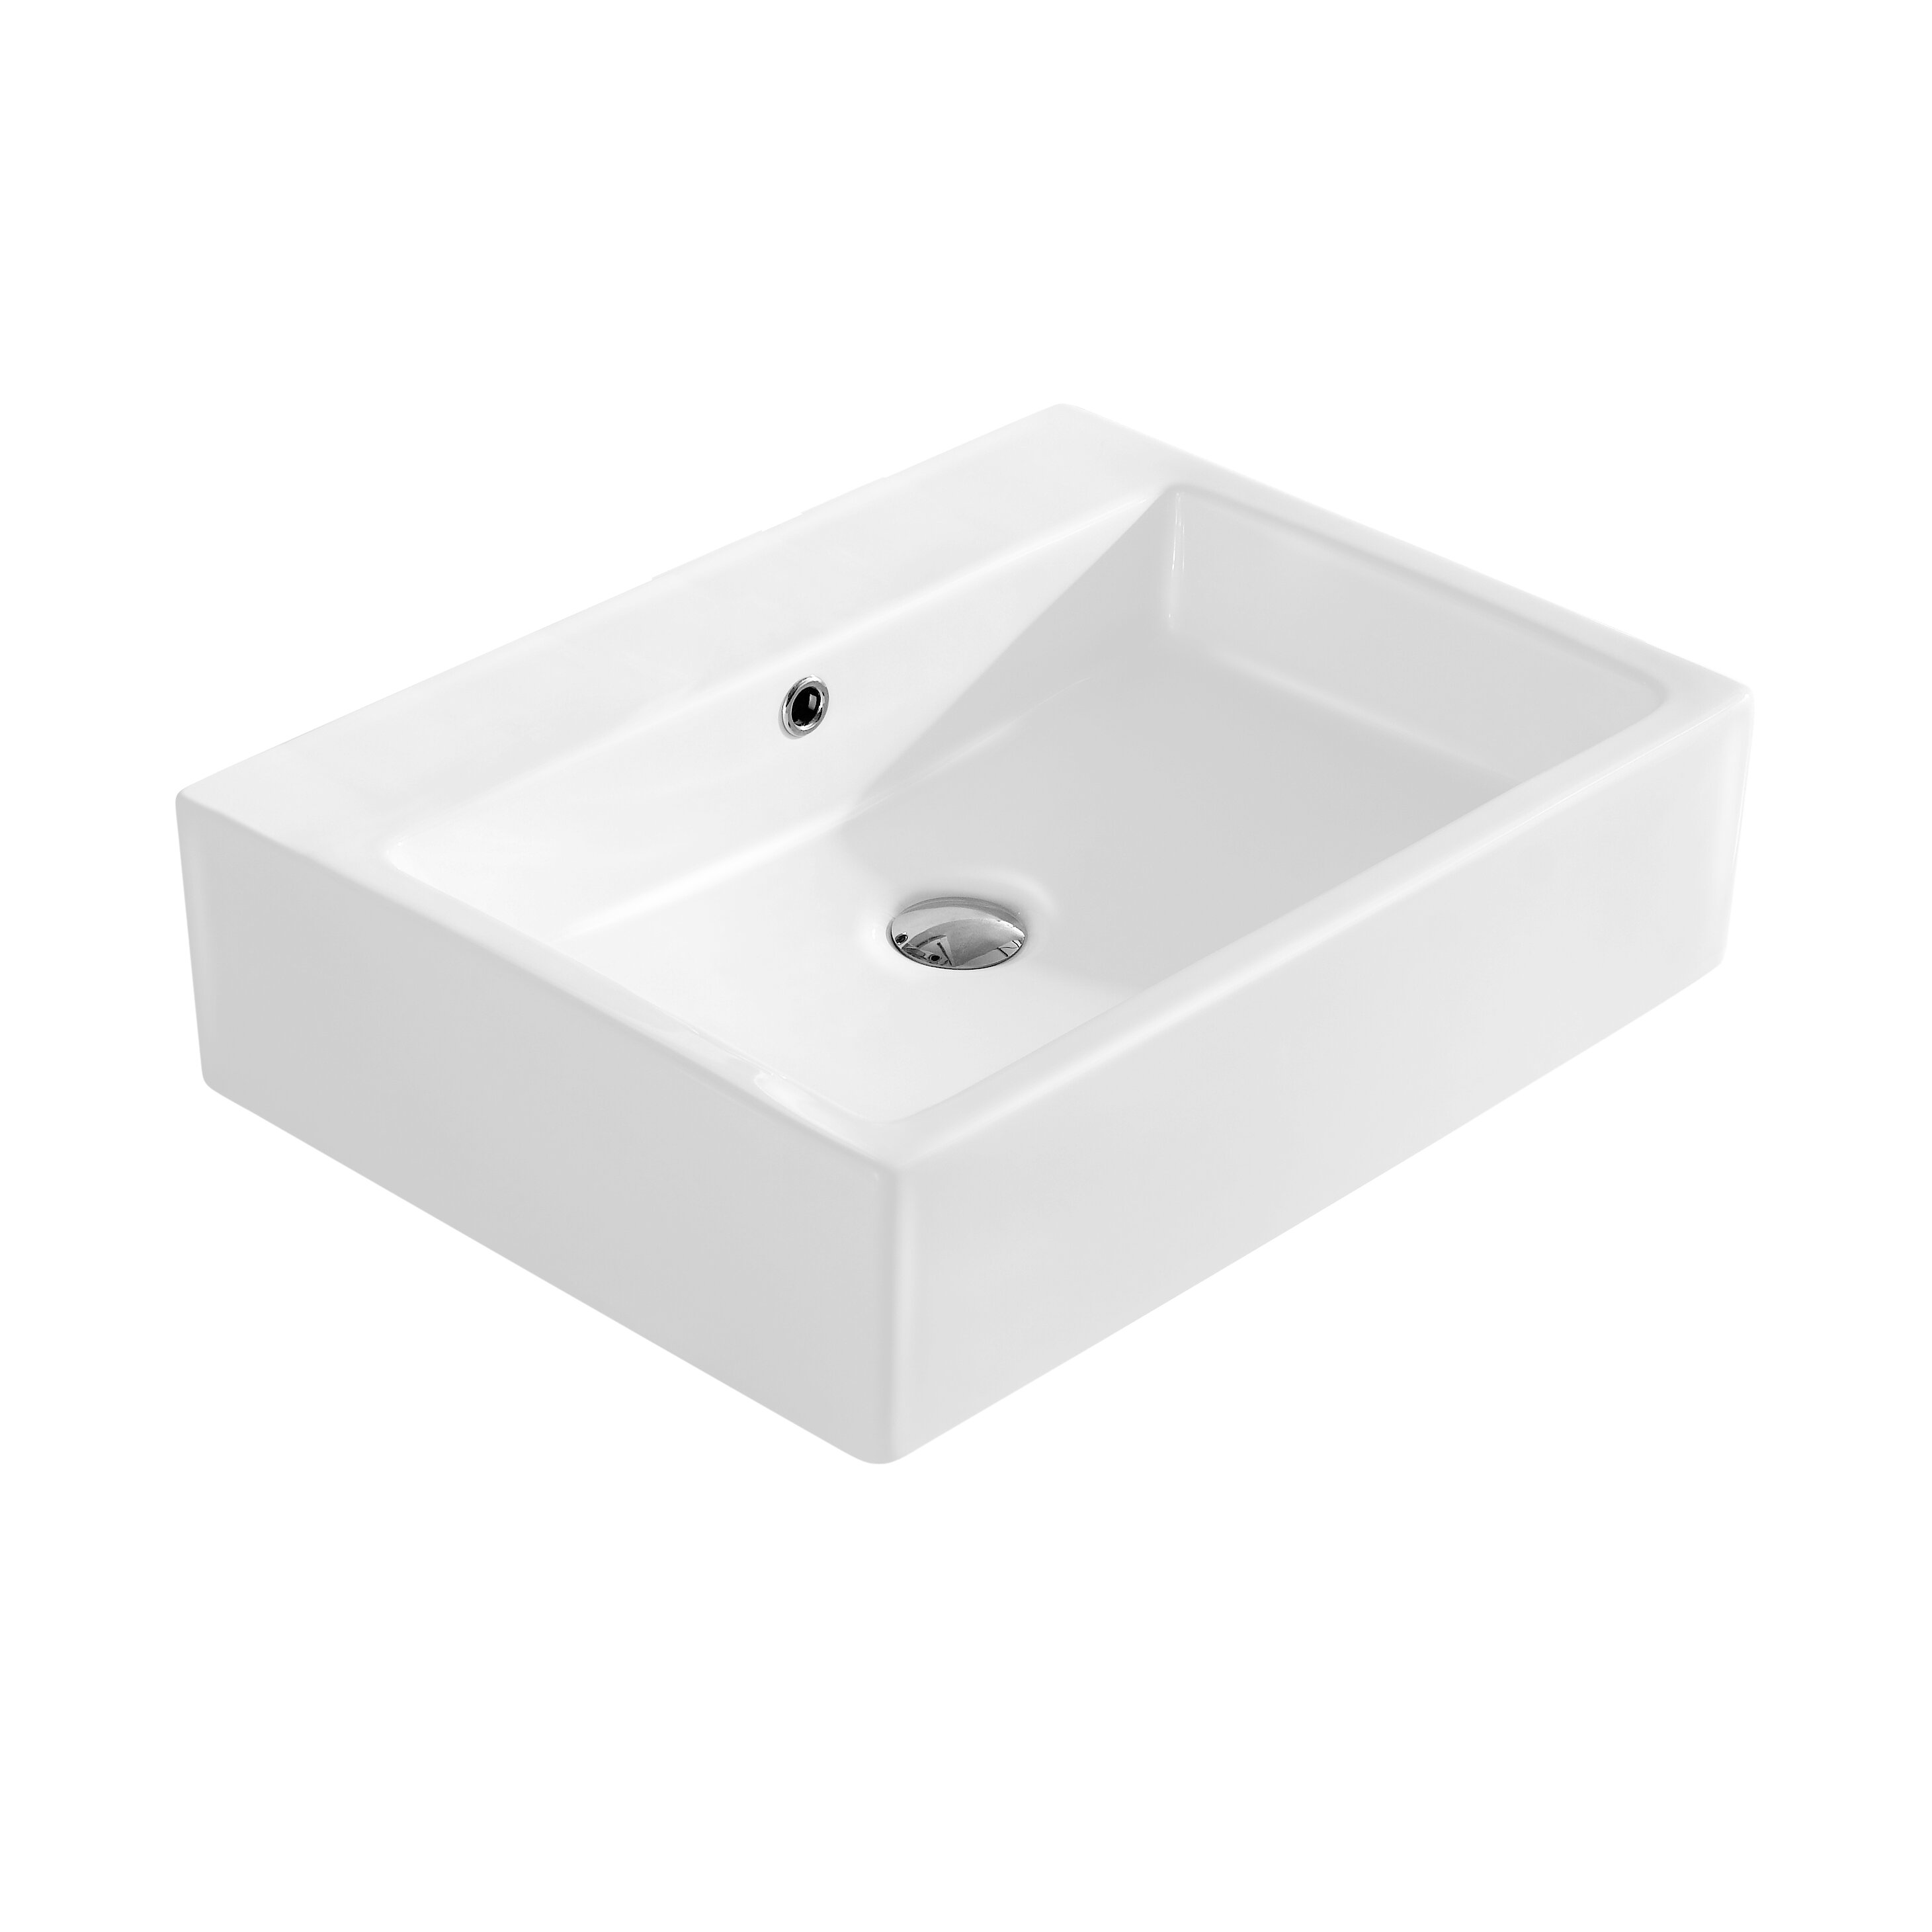 Rectangular Vessel Sink With Overflow : Modern Vitreous Rectangular Vessel Bathroom Sink with Overflow by Fine ...